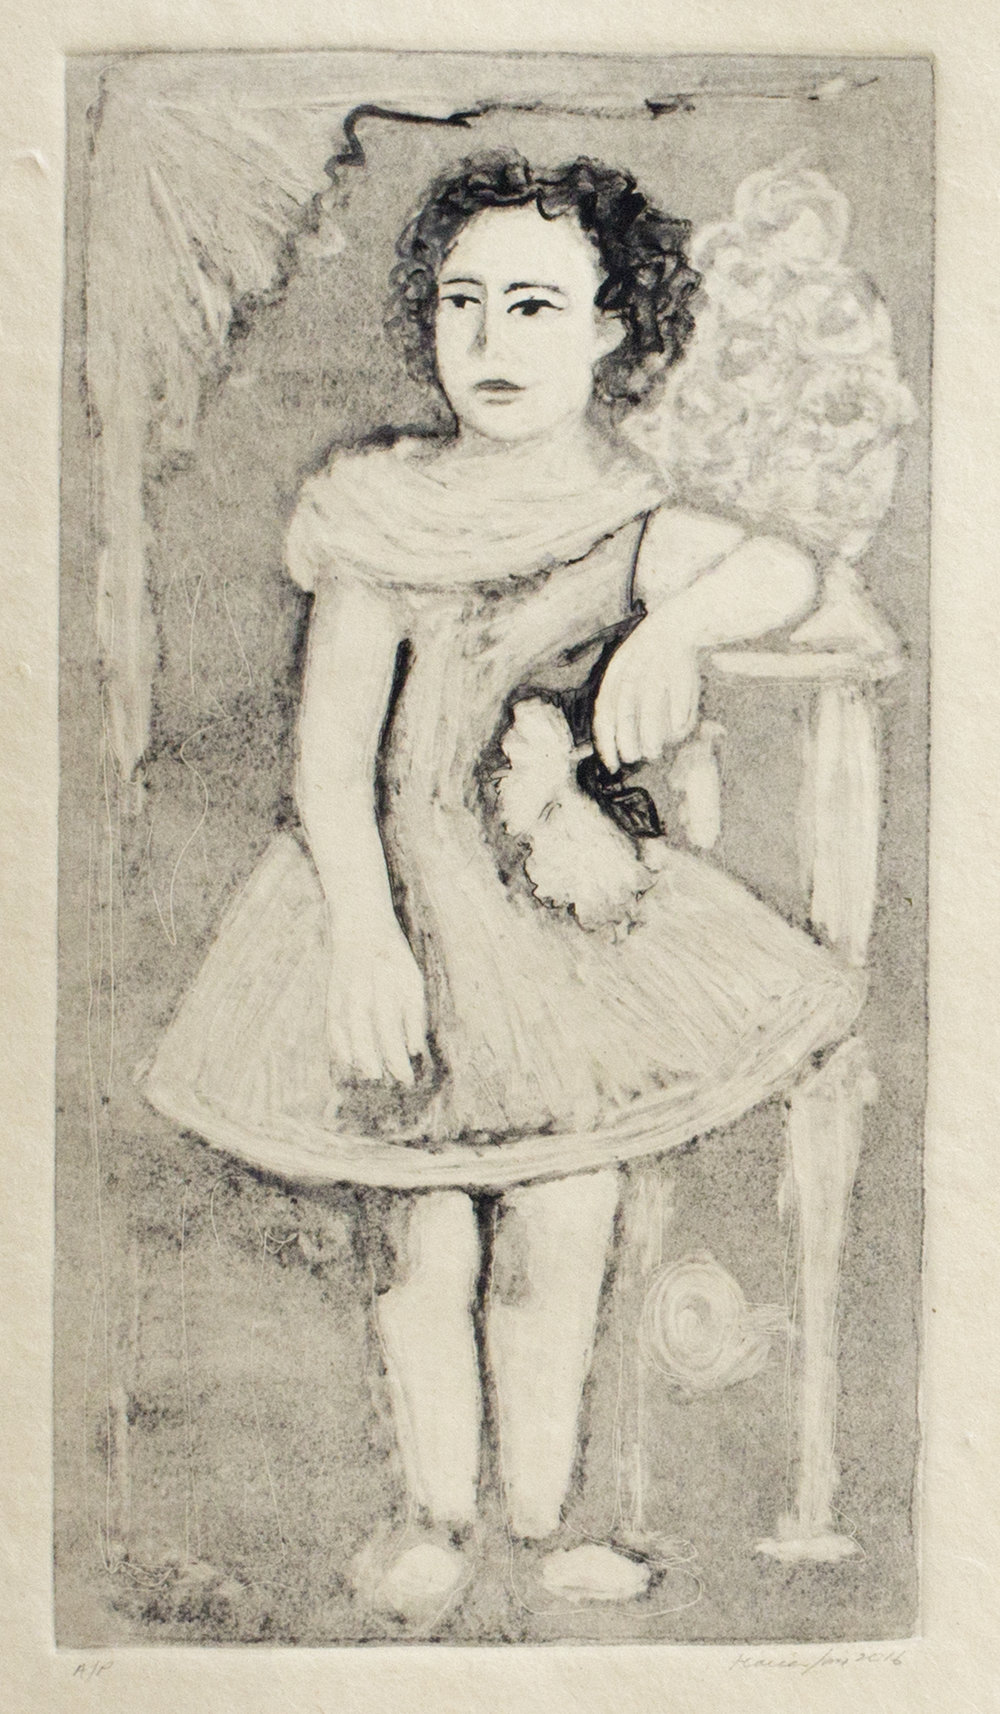 Tia Posing with a Flower (Ghost Print on Sepia Paper), 2016